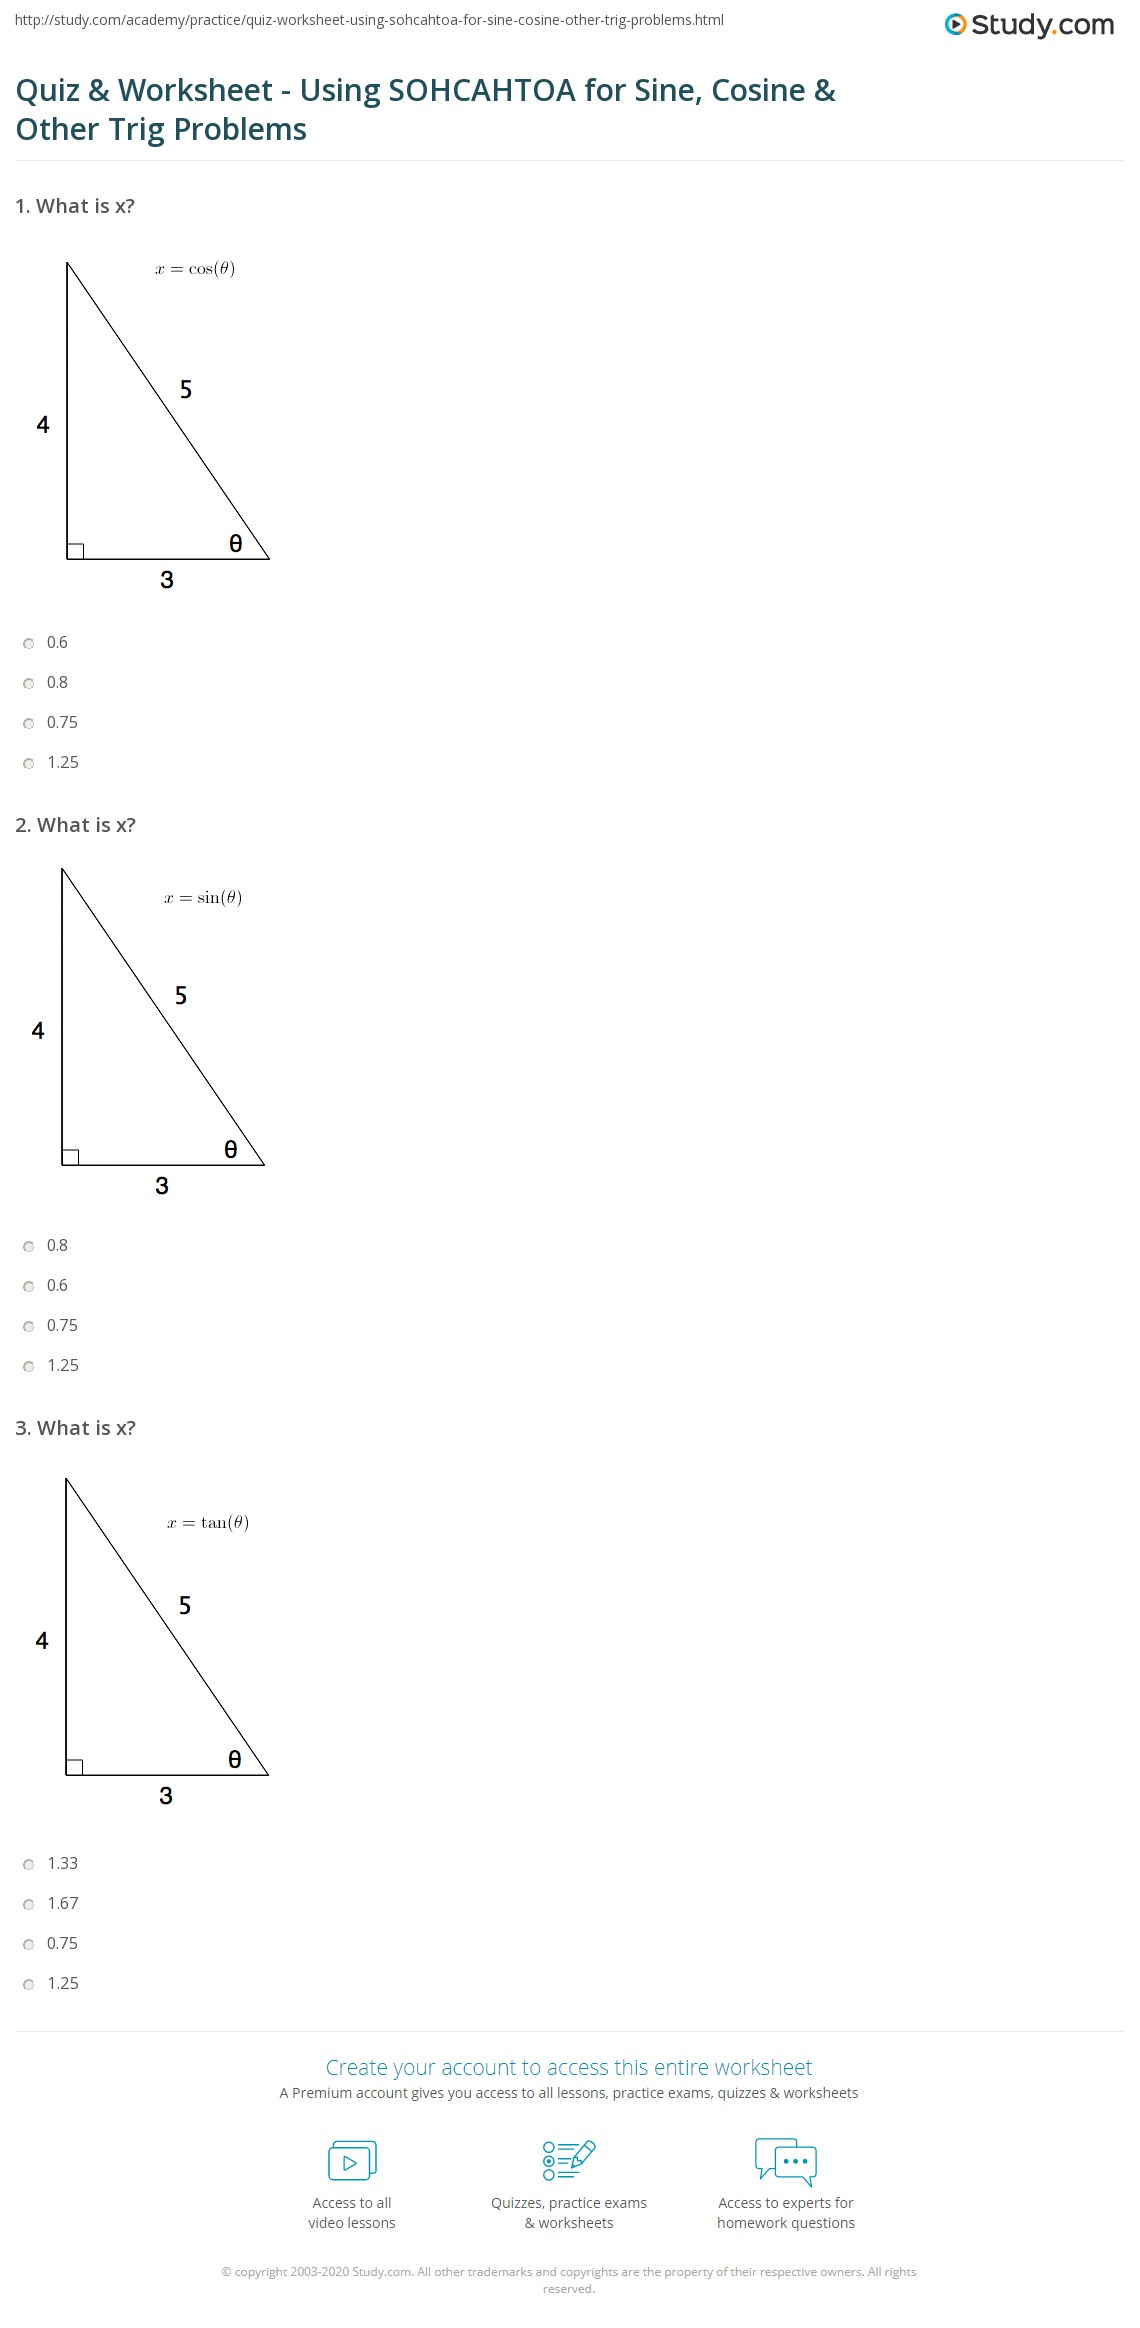 Worksheets Sohcahtoa Worksheet quiz worksheet using sohcahtoa for sine cosine other trig print trigonometry and worksheet